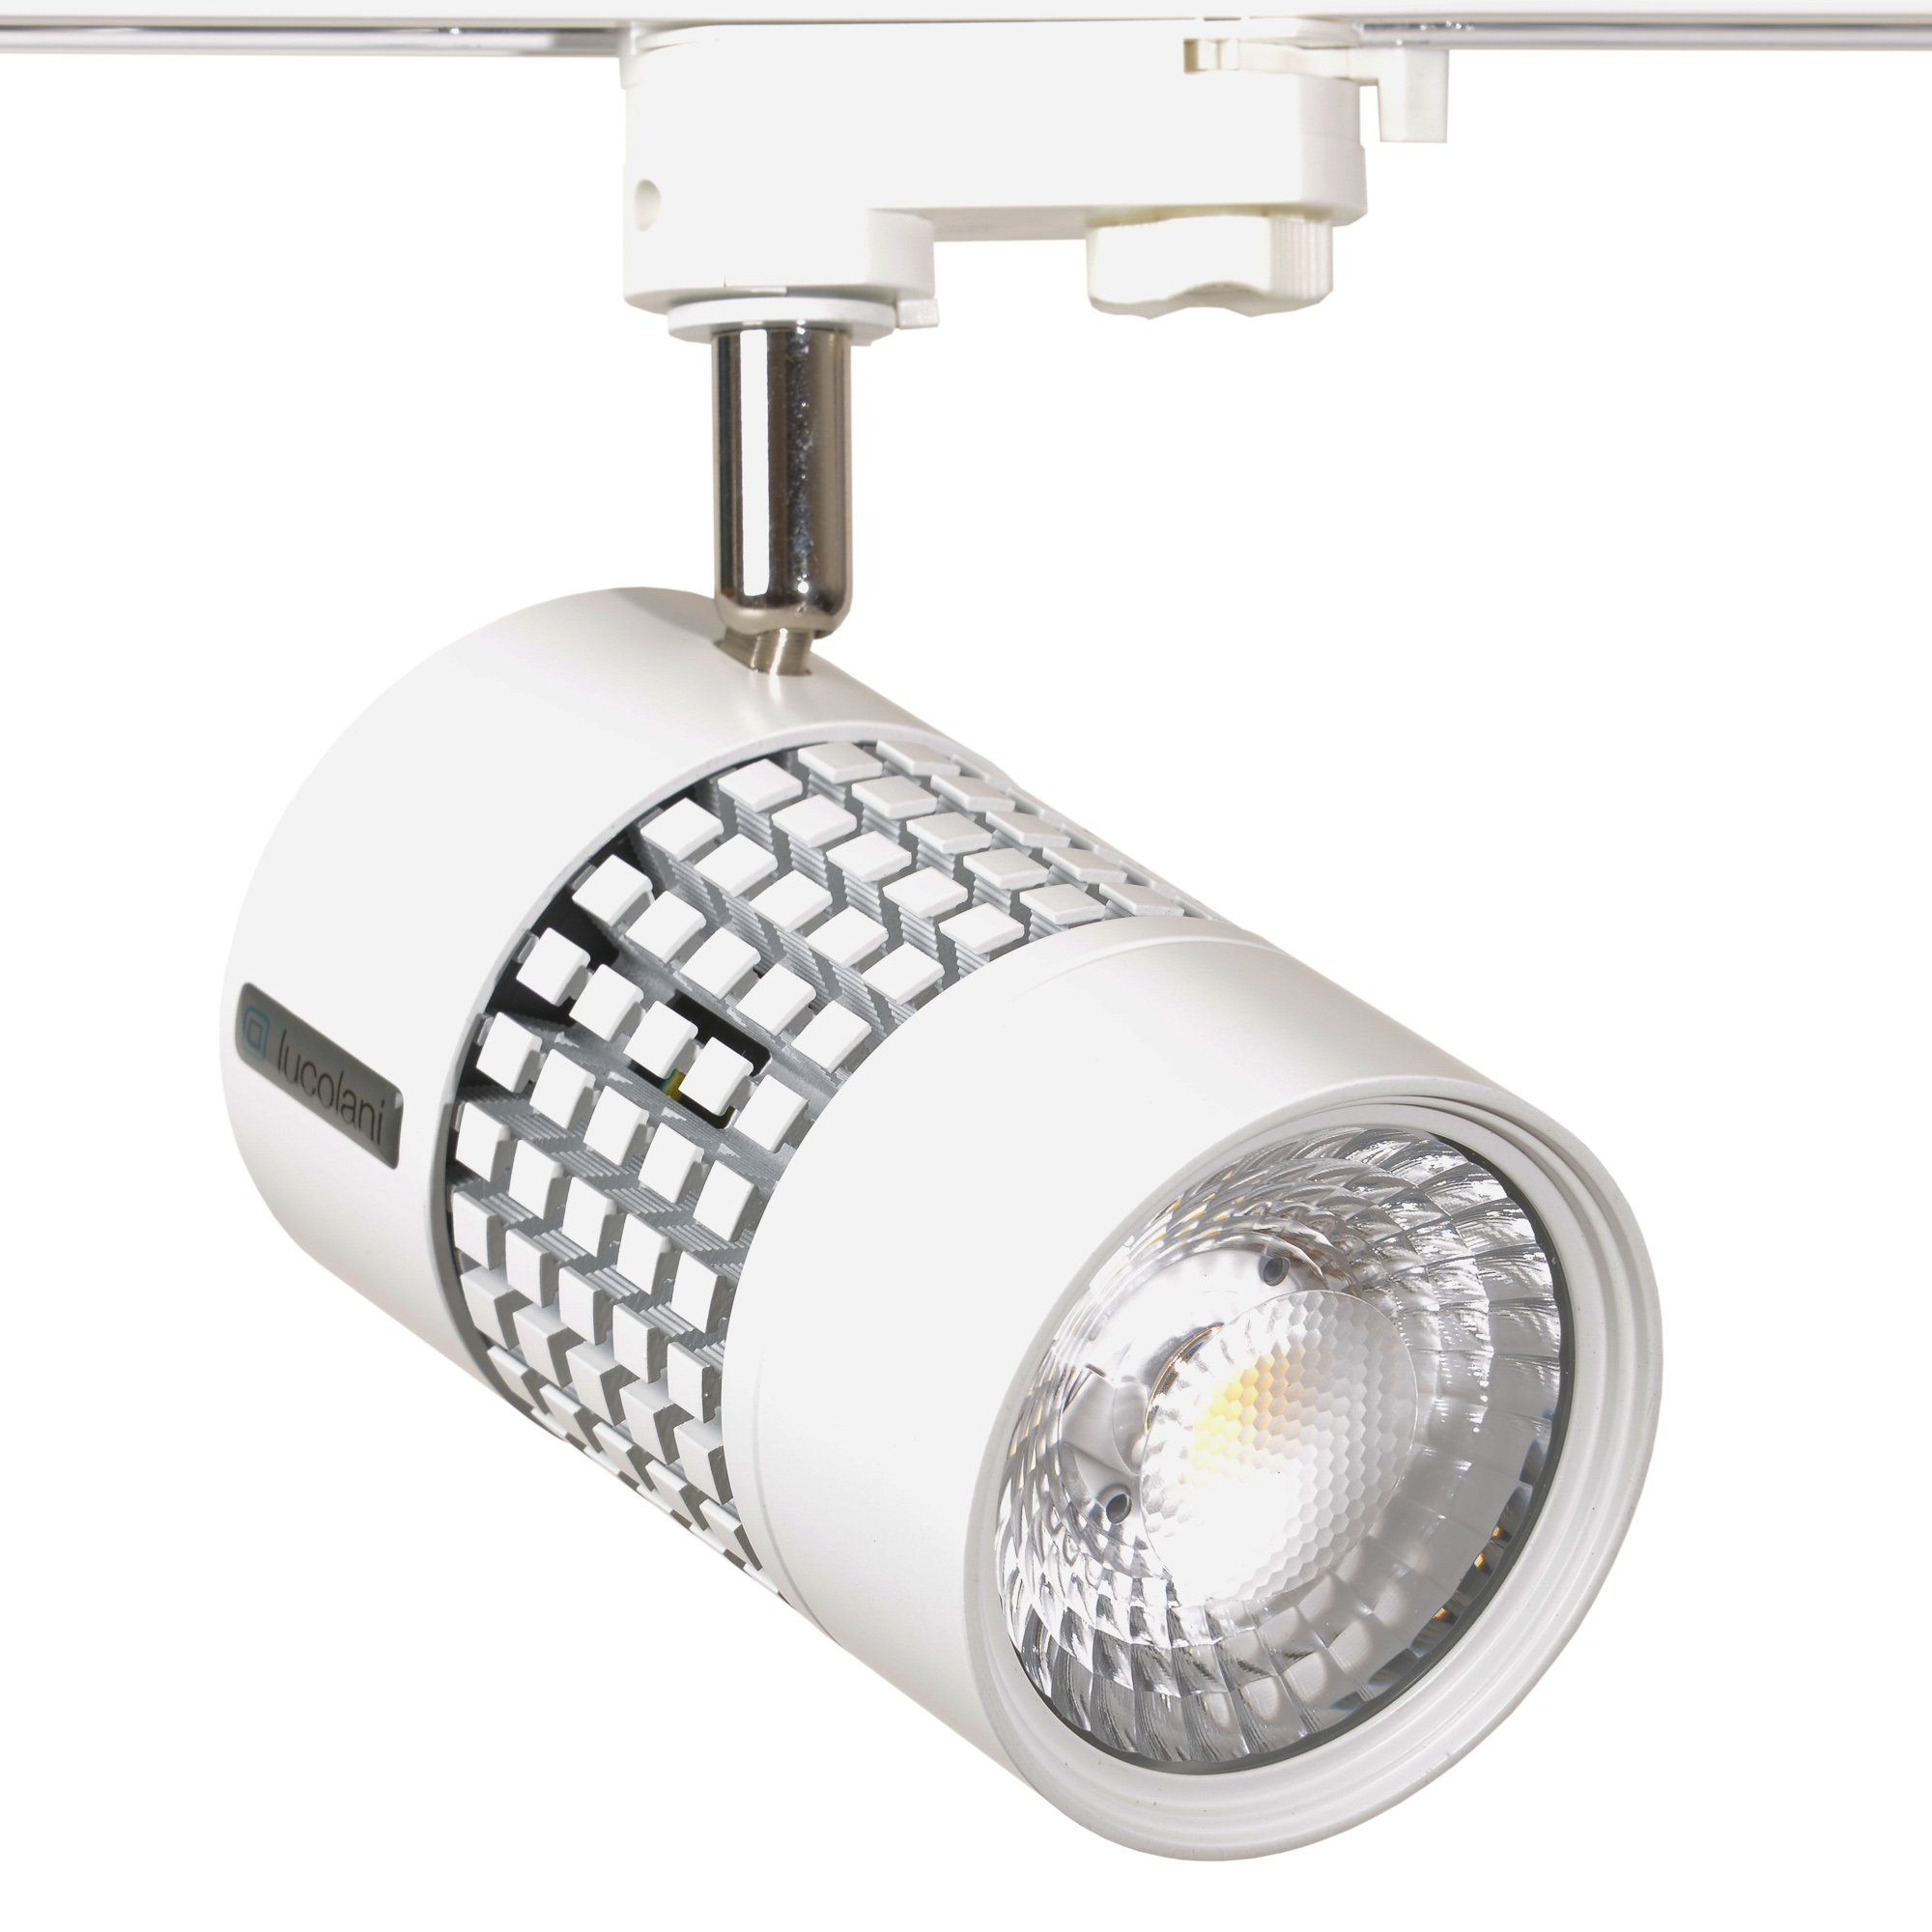 Deckenbeleuchtung Led Strahler Lucolani San Francisco 25 3000 W Dimmbarer Led 3 Phasen Schienen